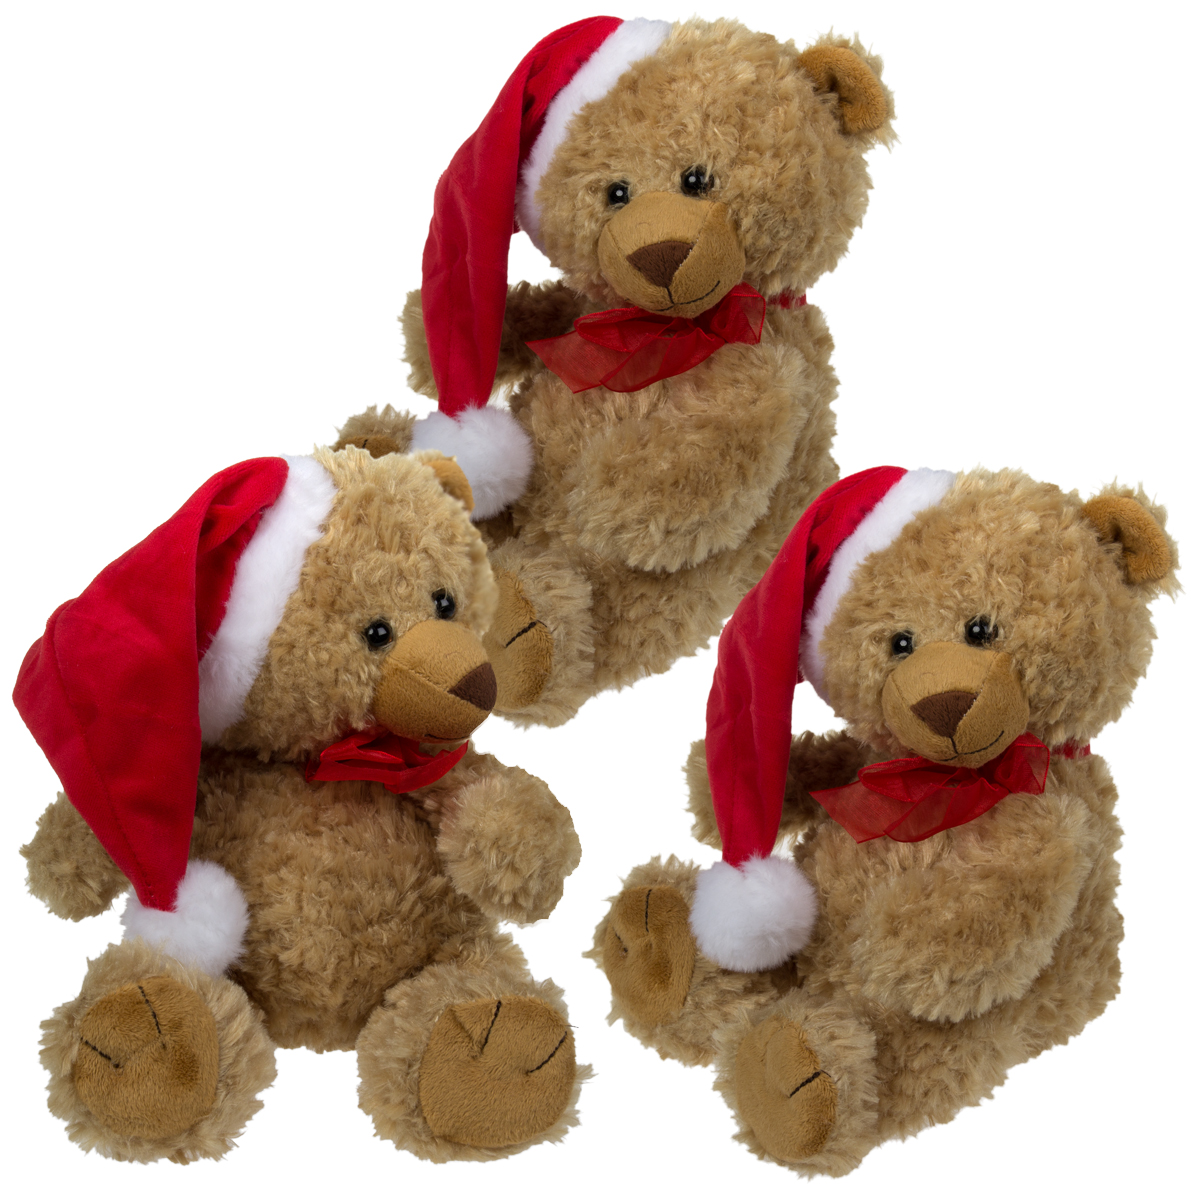 3 Pack Santa Hat Teddy Bears By The Petting Zoo Christmas Holiday Plush Stuffed Animals Christmas Gift by